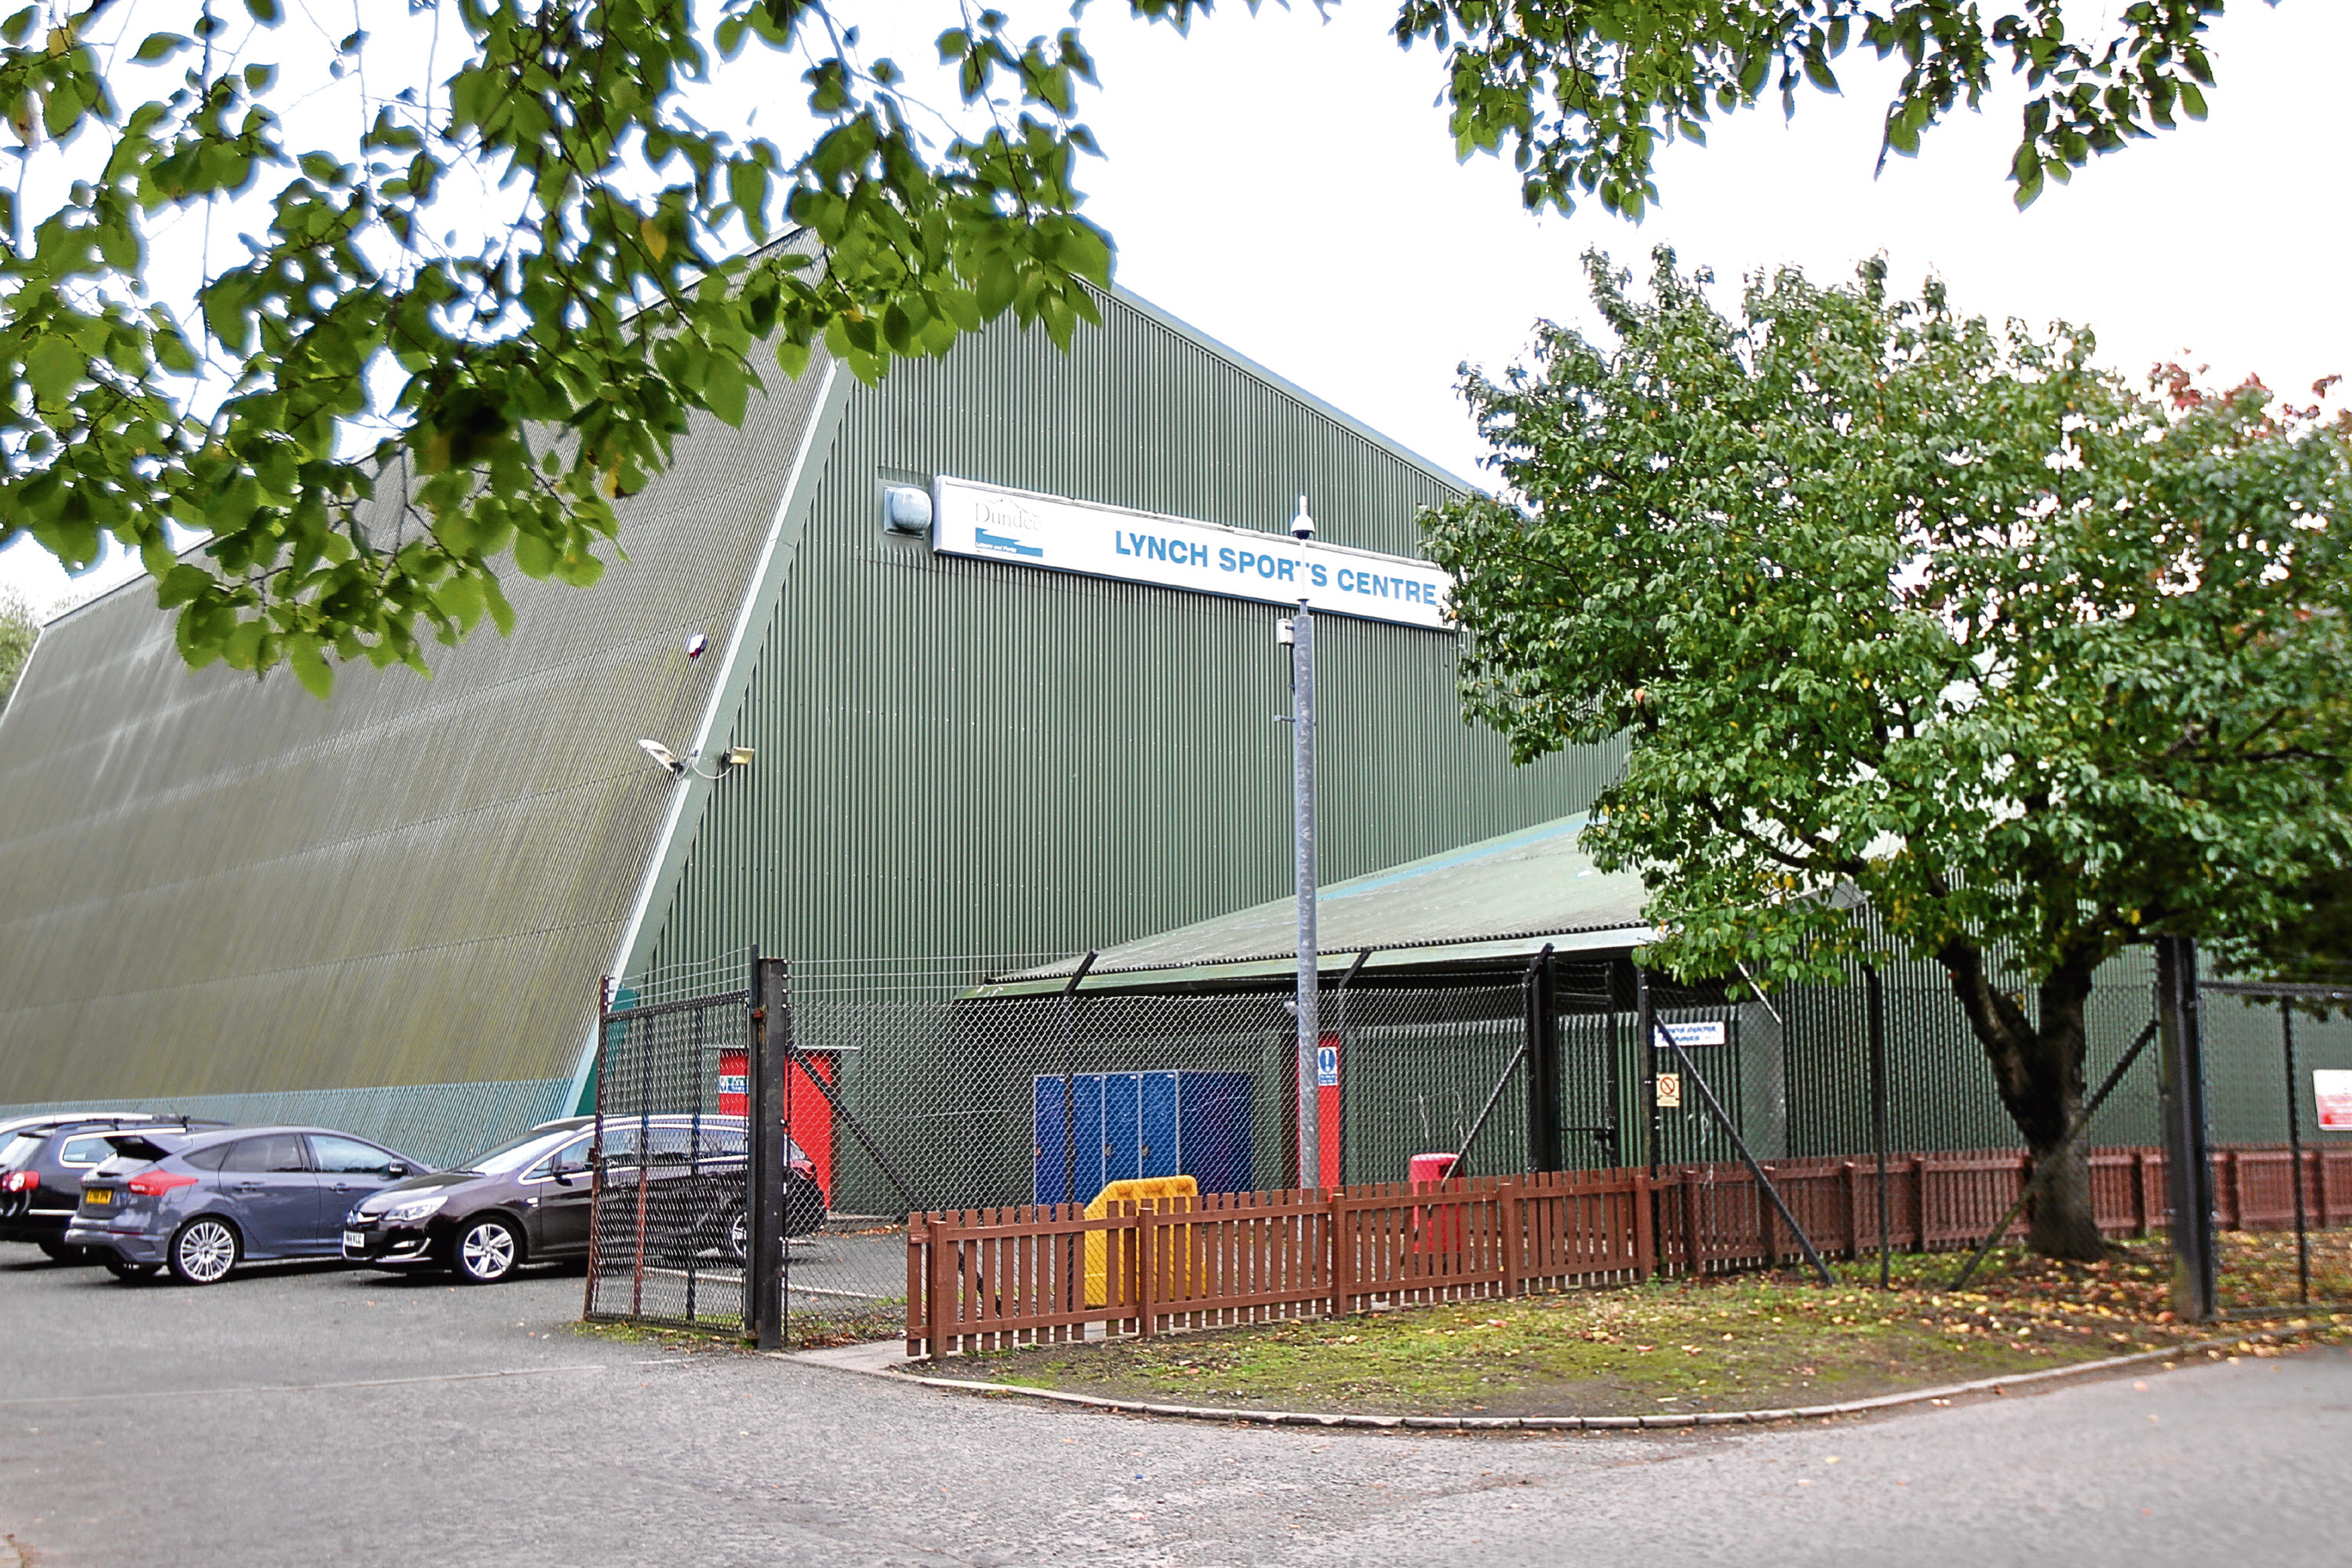 Lynch Sports Centre (stock image)